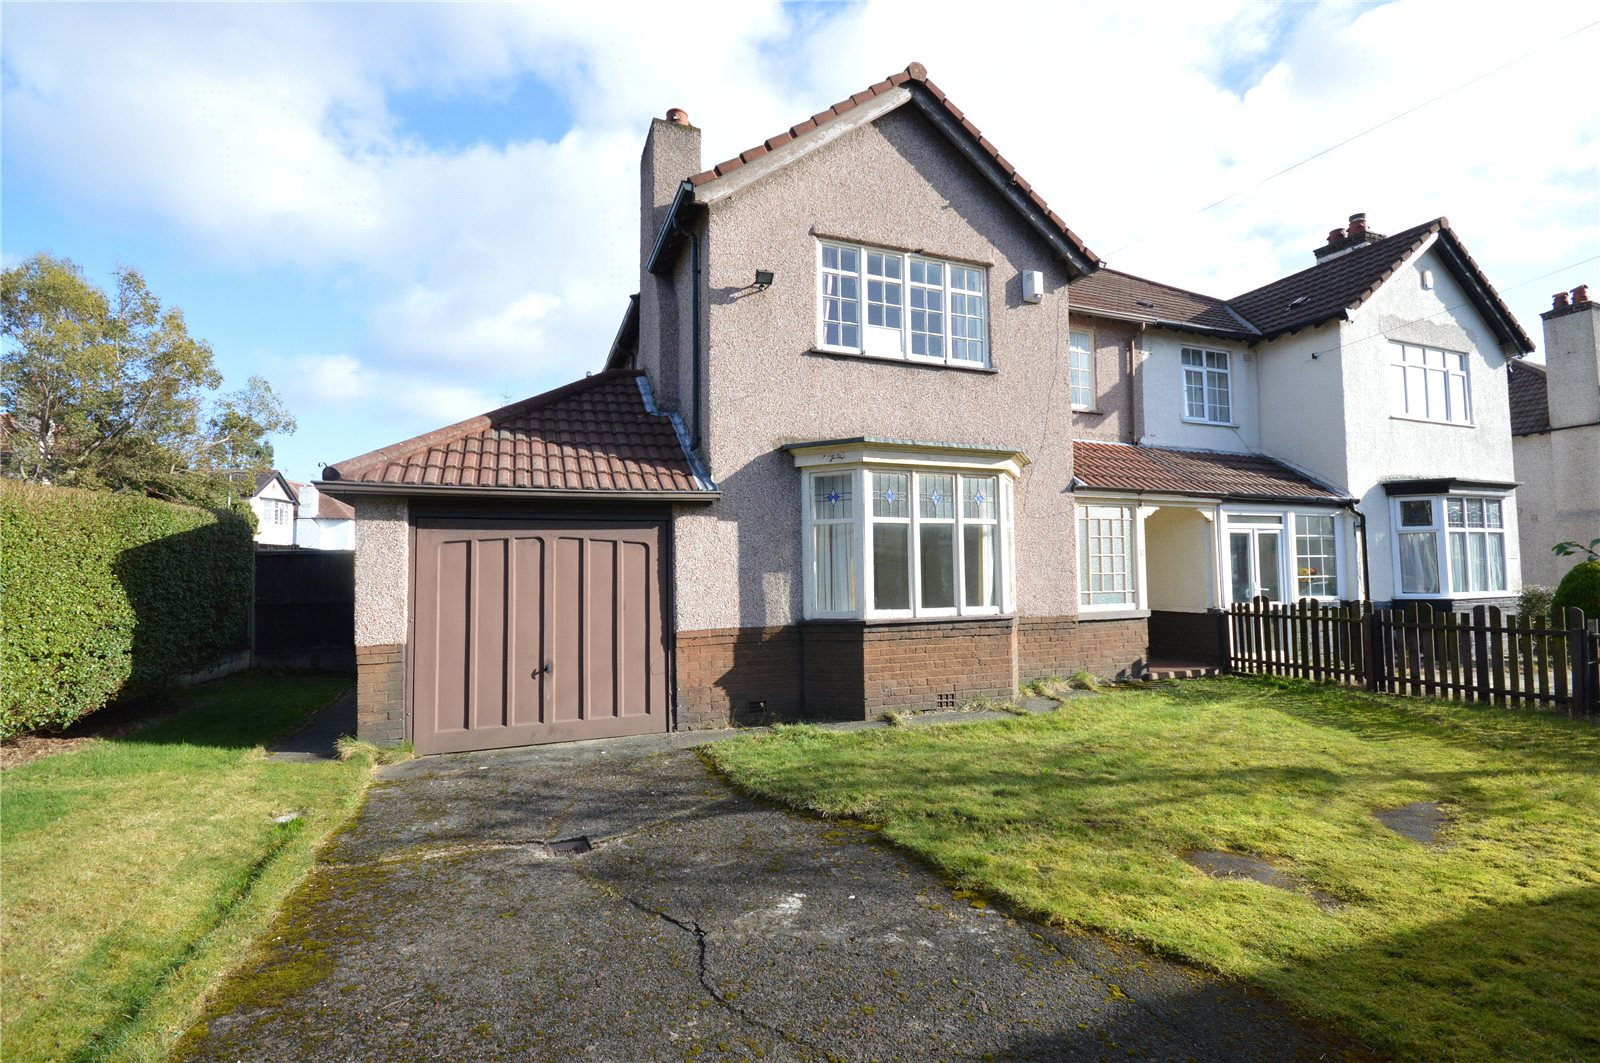 4 Bedrooms Semi Detached House for sale in Rutherford Road, Mossley Hill, Liverpool, L18